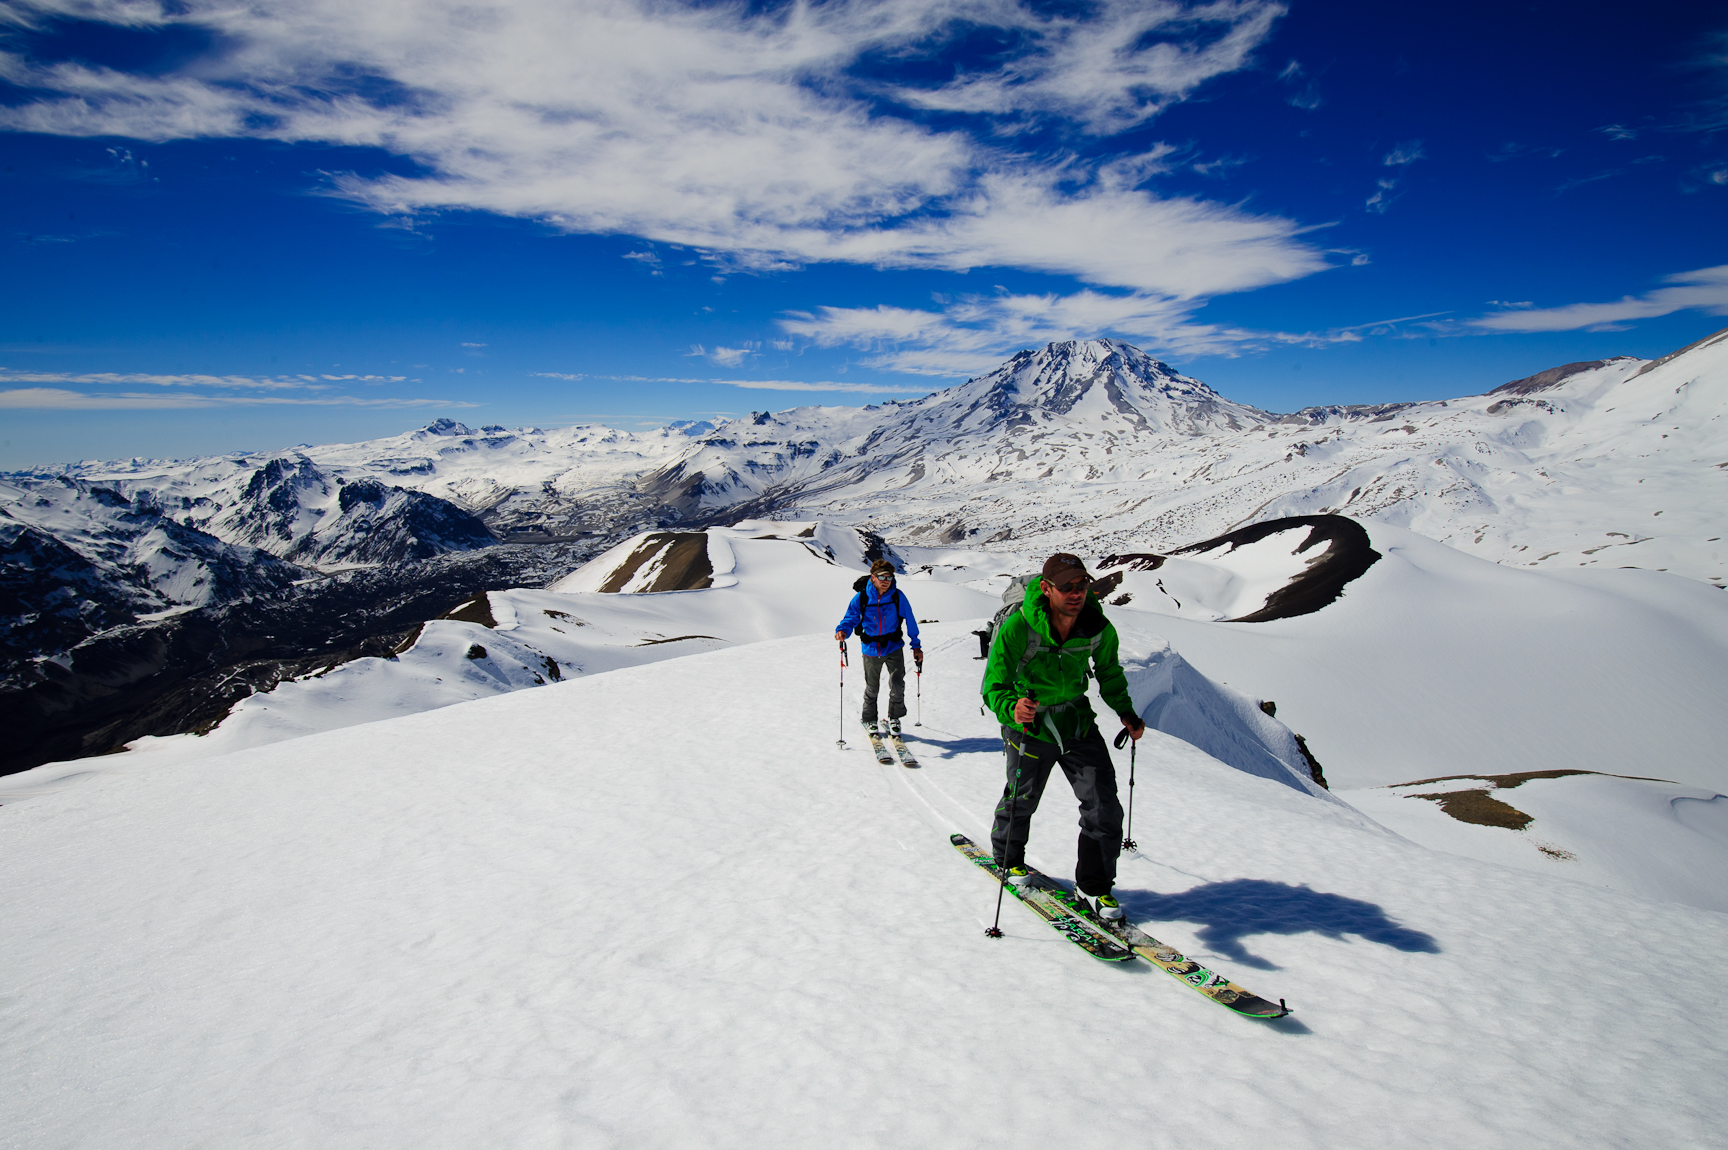 a report on everything you need to know about snowboarding equipment Essential gear for ski touring getting into the backcountry posted by patrick law ski touring, at skiing, ski mountaineering, randonee whatever you call it, getting into the backcountry on skis is becoming more and more popular.